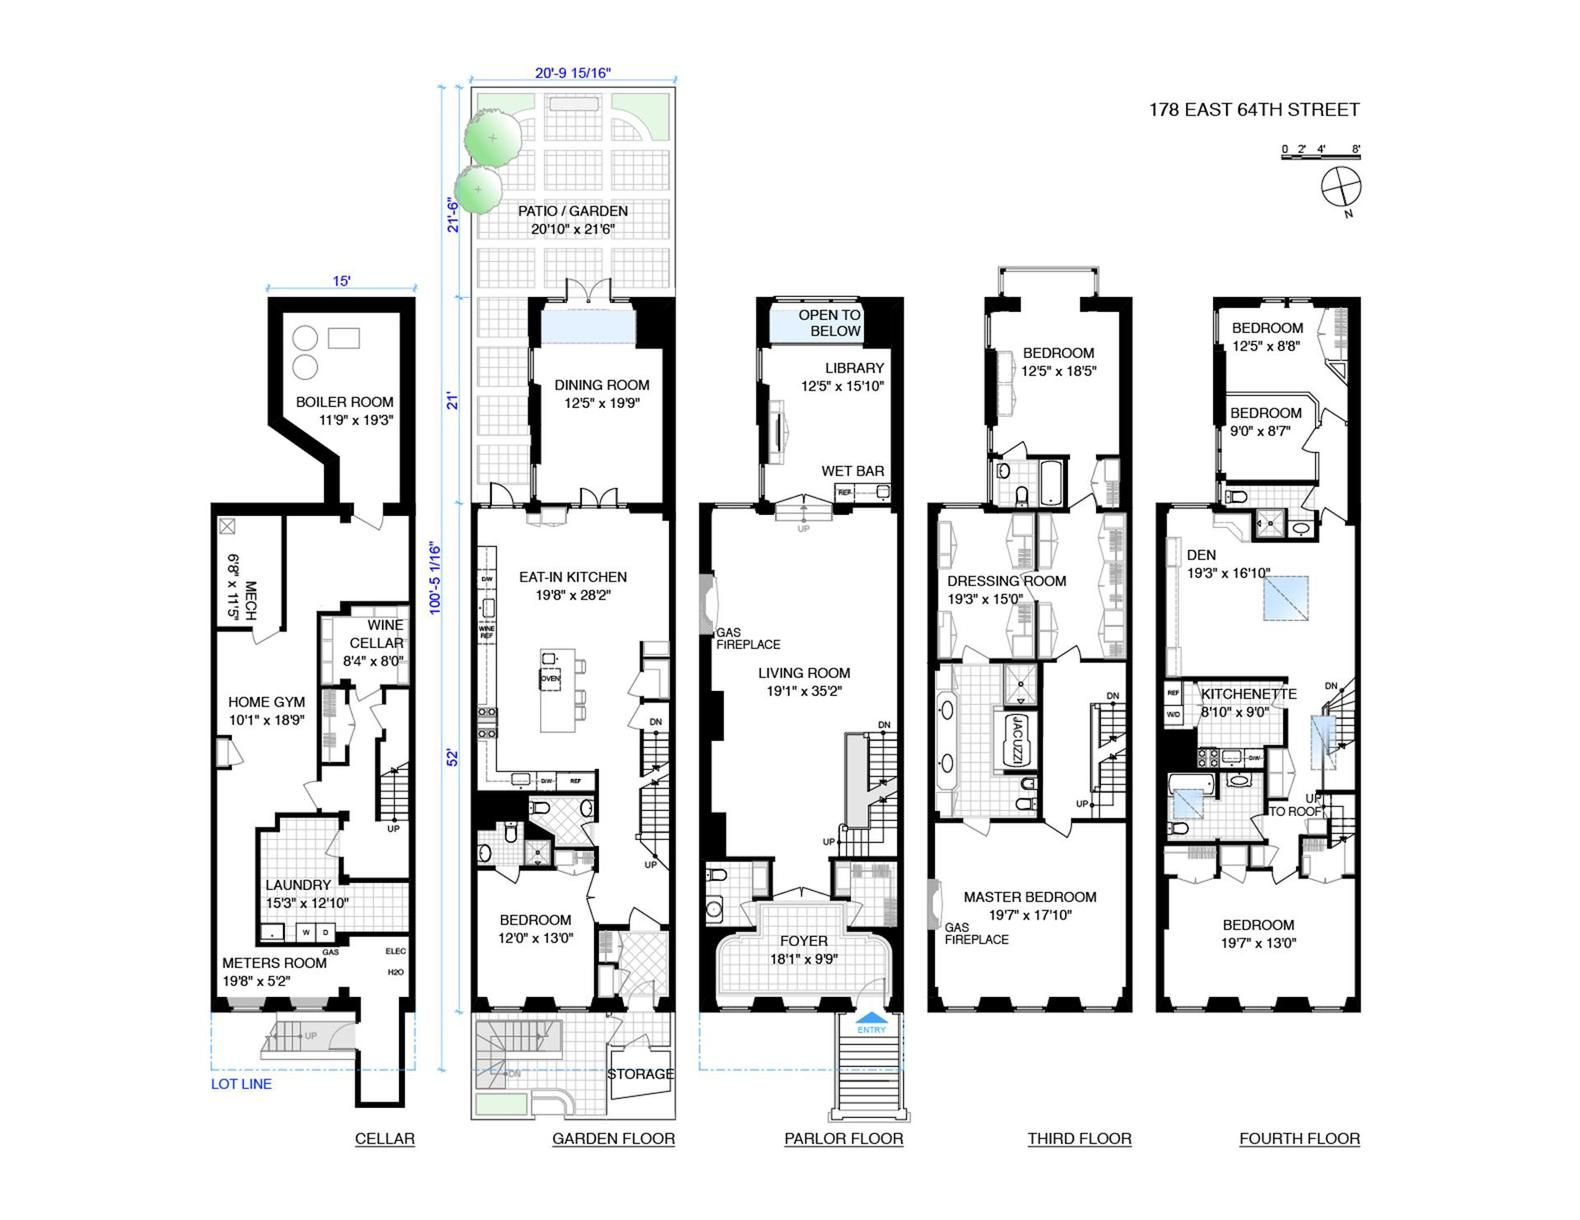 F2dc803a0fb866d5fecbf37582b8a646ff624c43 W H 0 1580 1220 Floor Plans House Plans Compact House